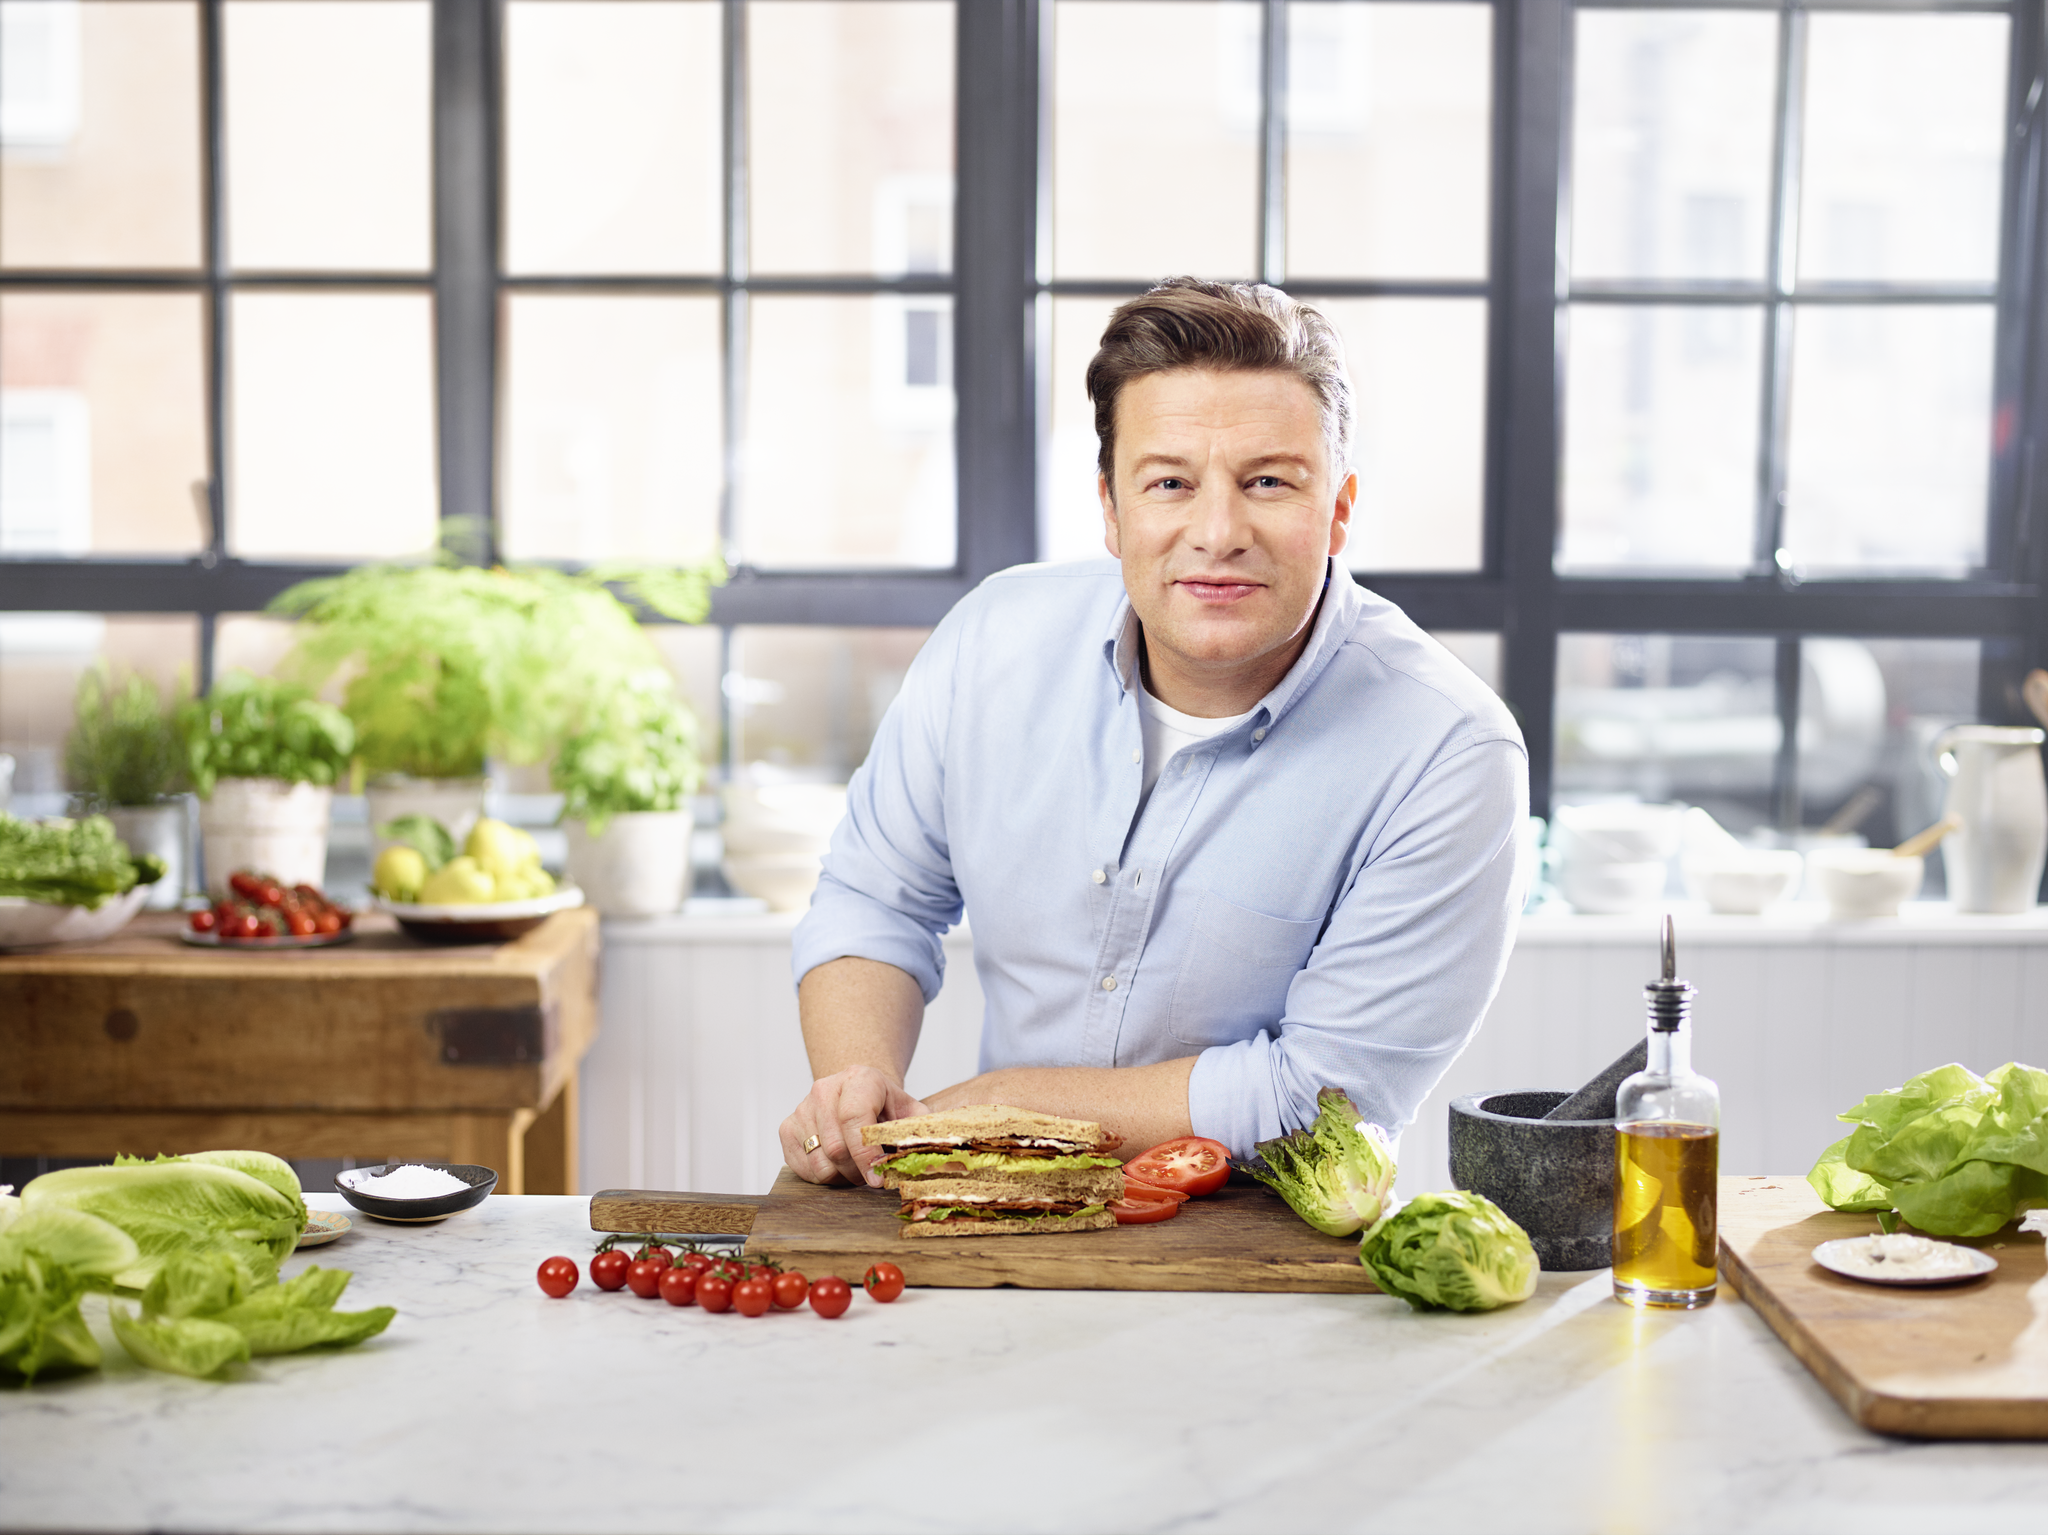 Jamie Oliver is launching a new range of healthy wraps and sandwiches to be sold at Shell petrol garages